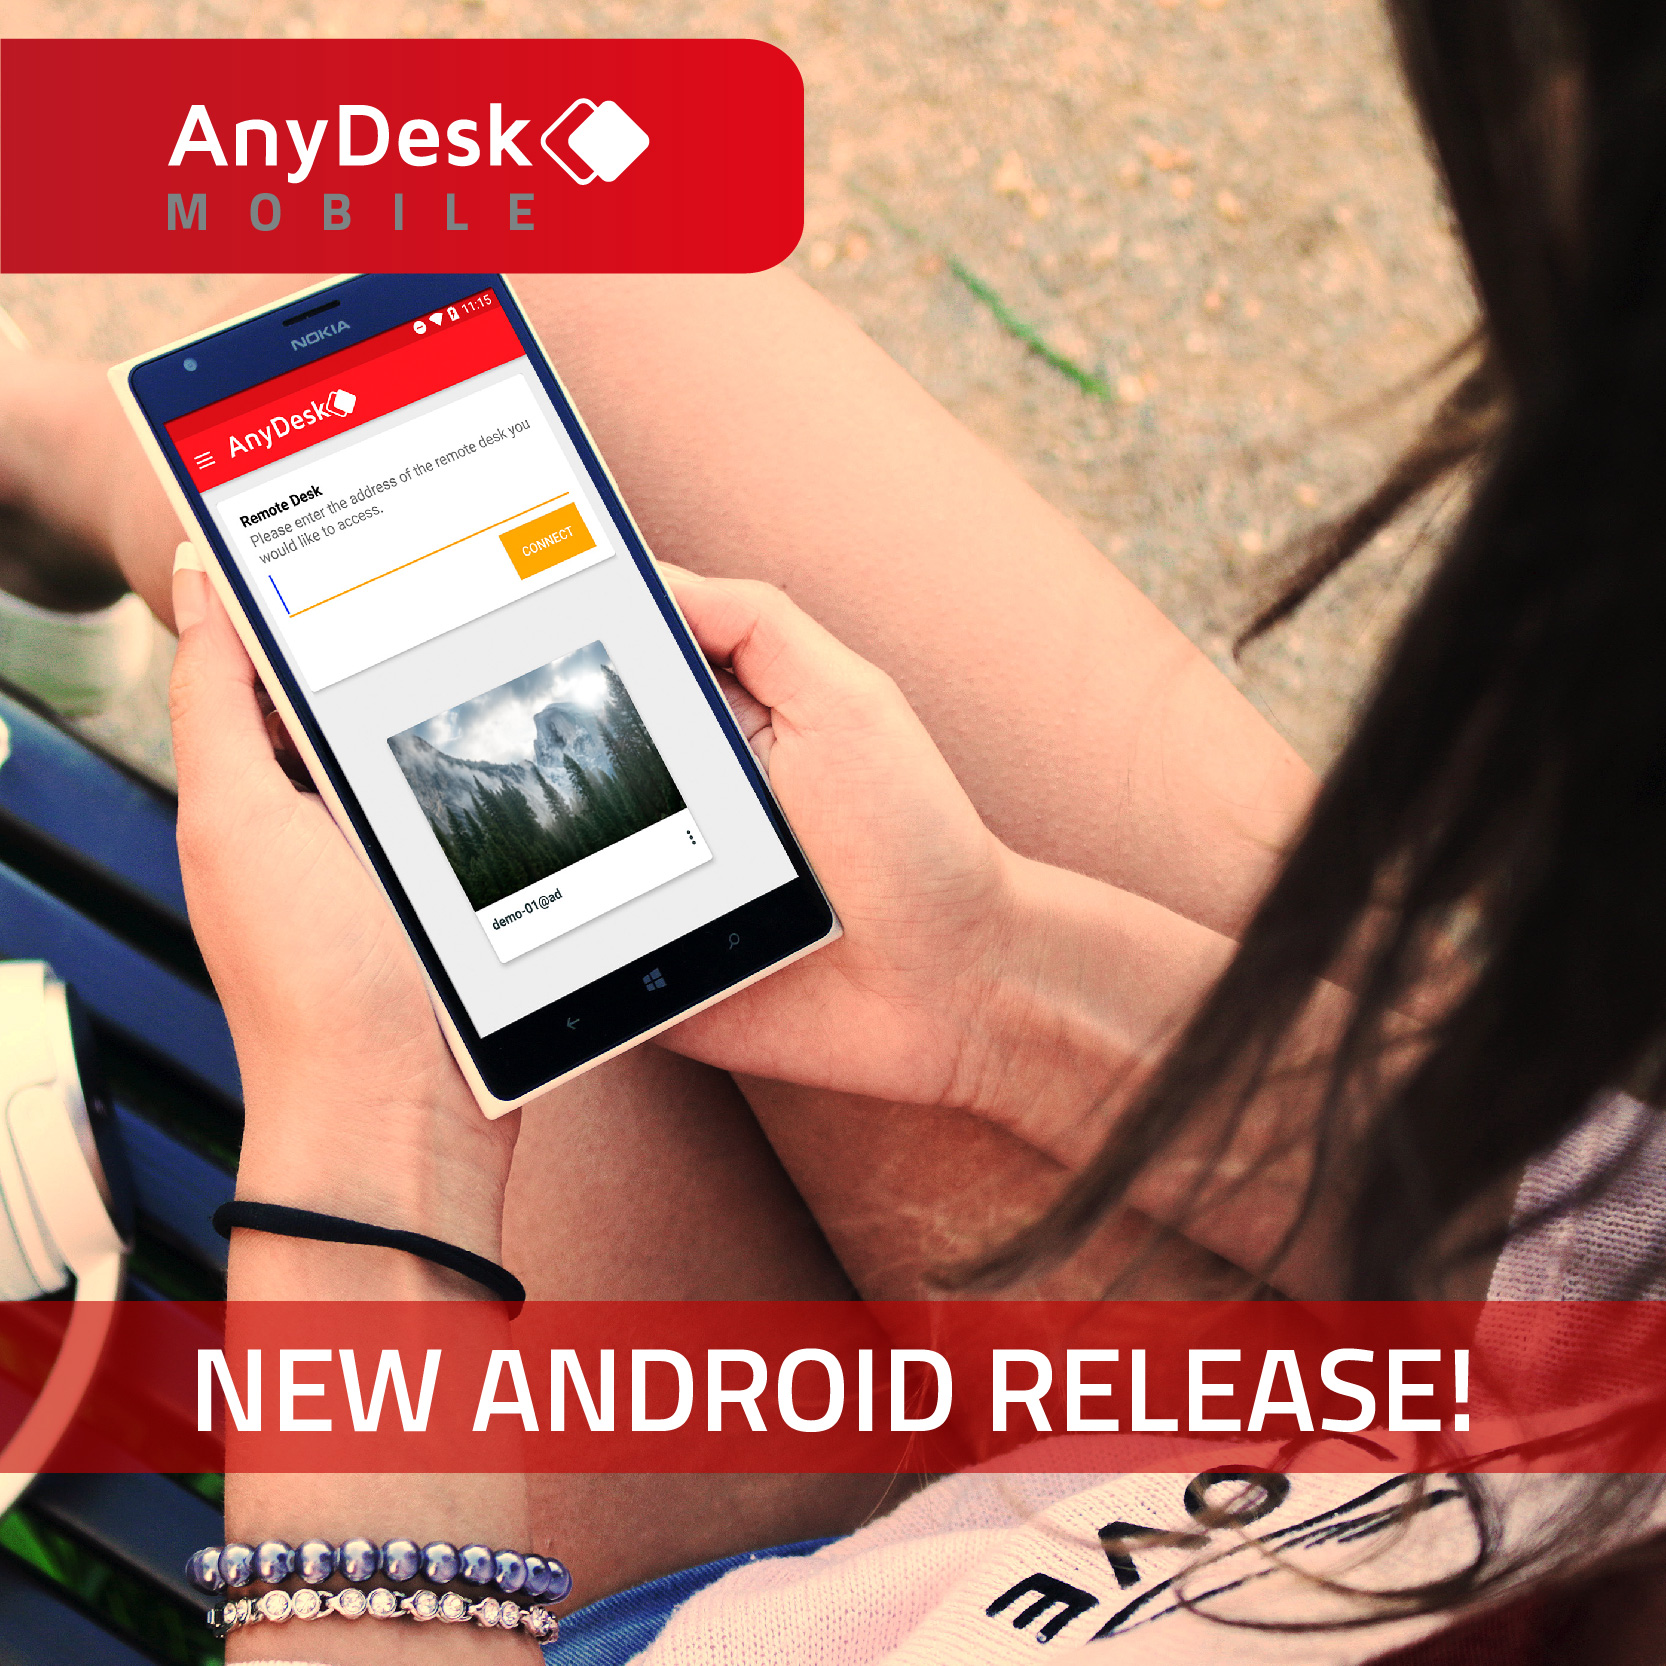 anydesk download for mobile